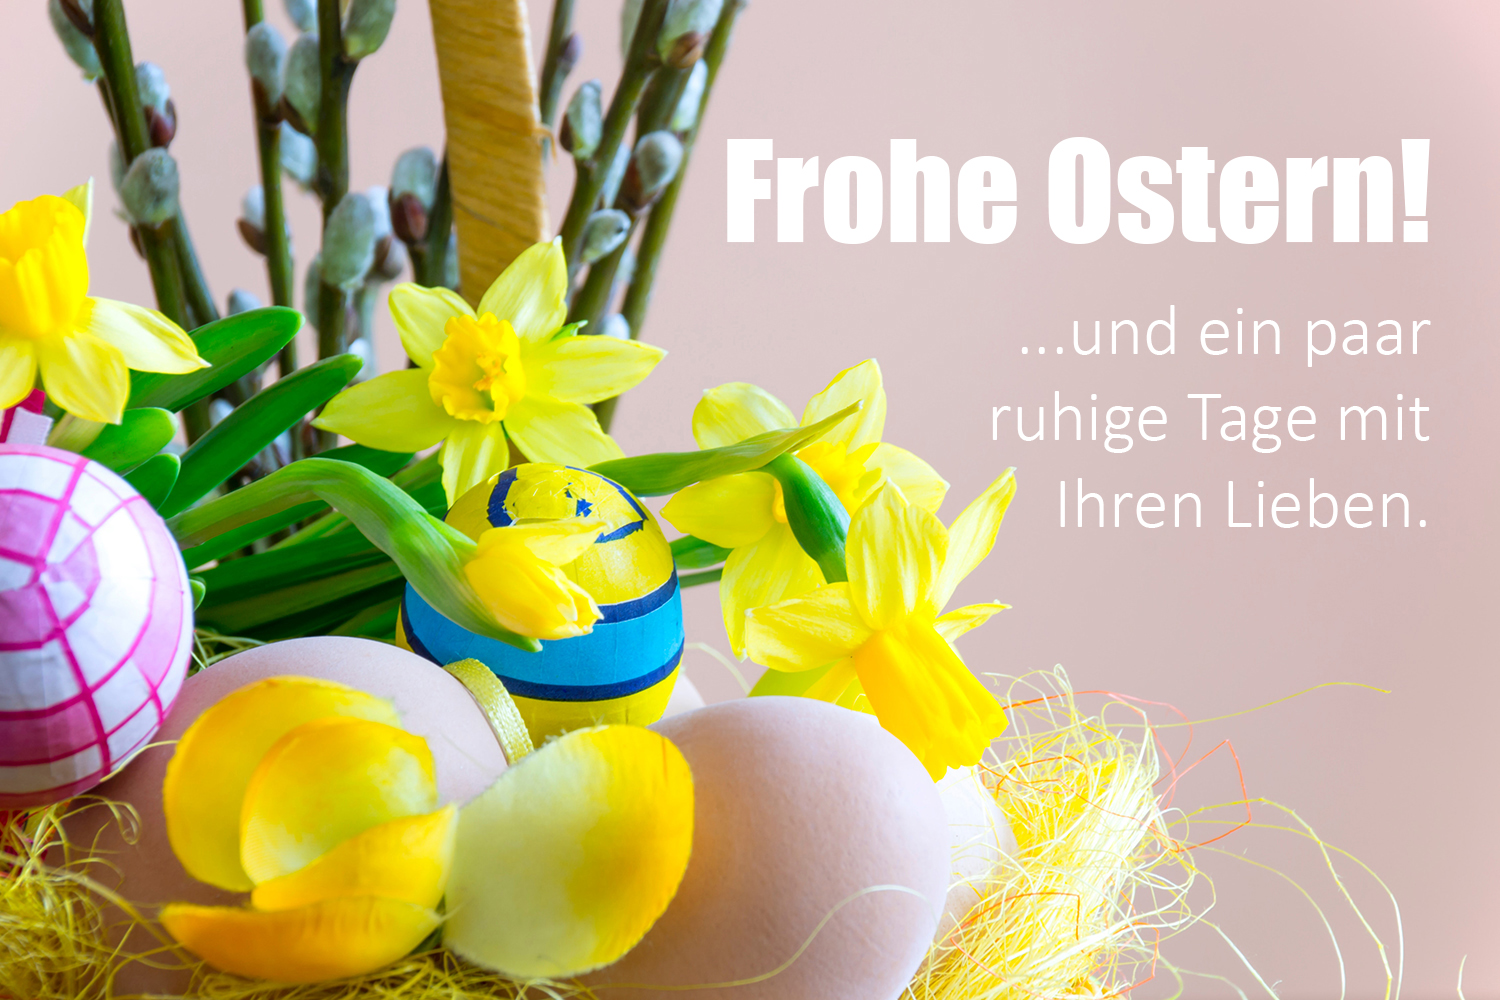 Peter Hollo: Frohe Ostern!